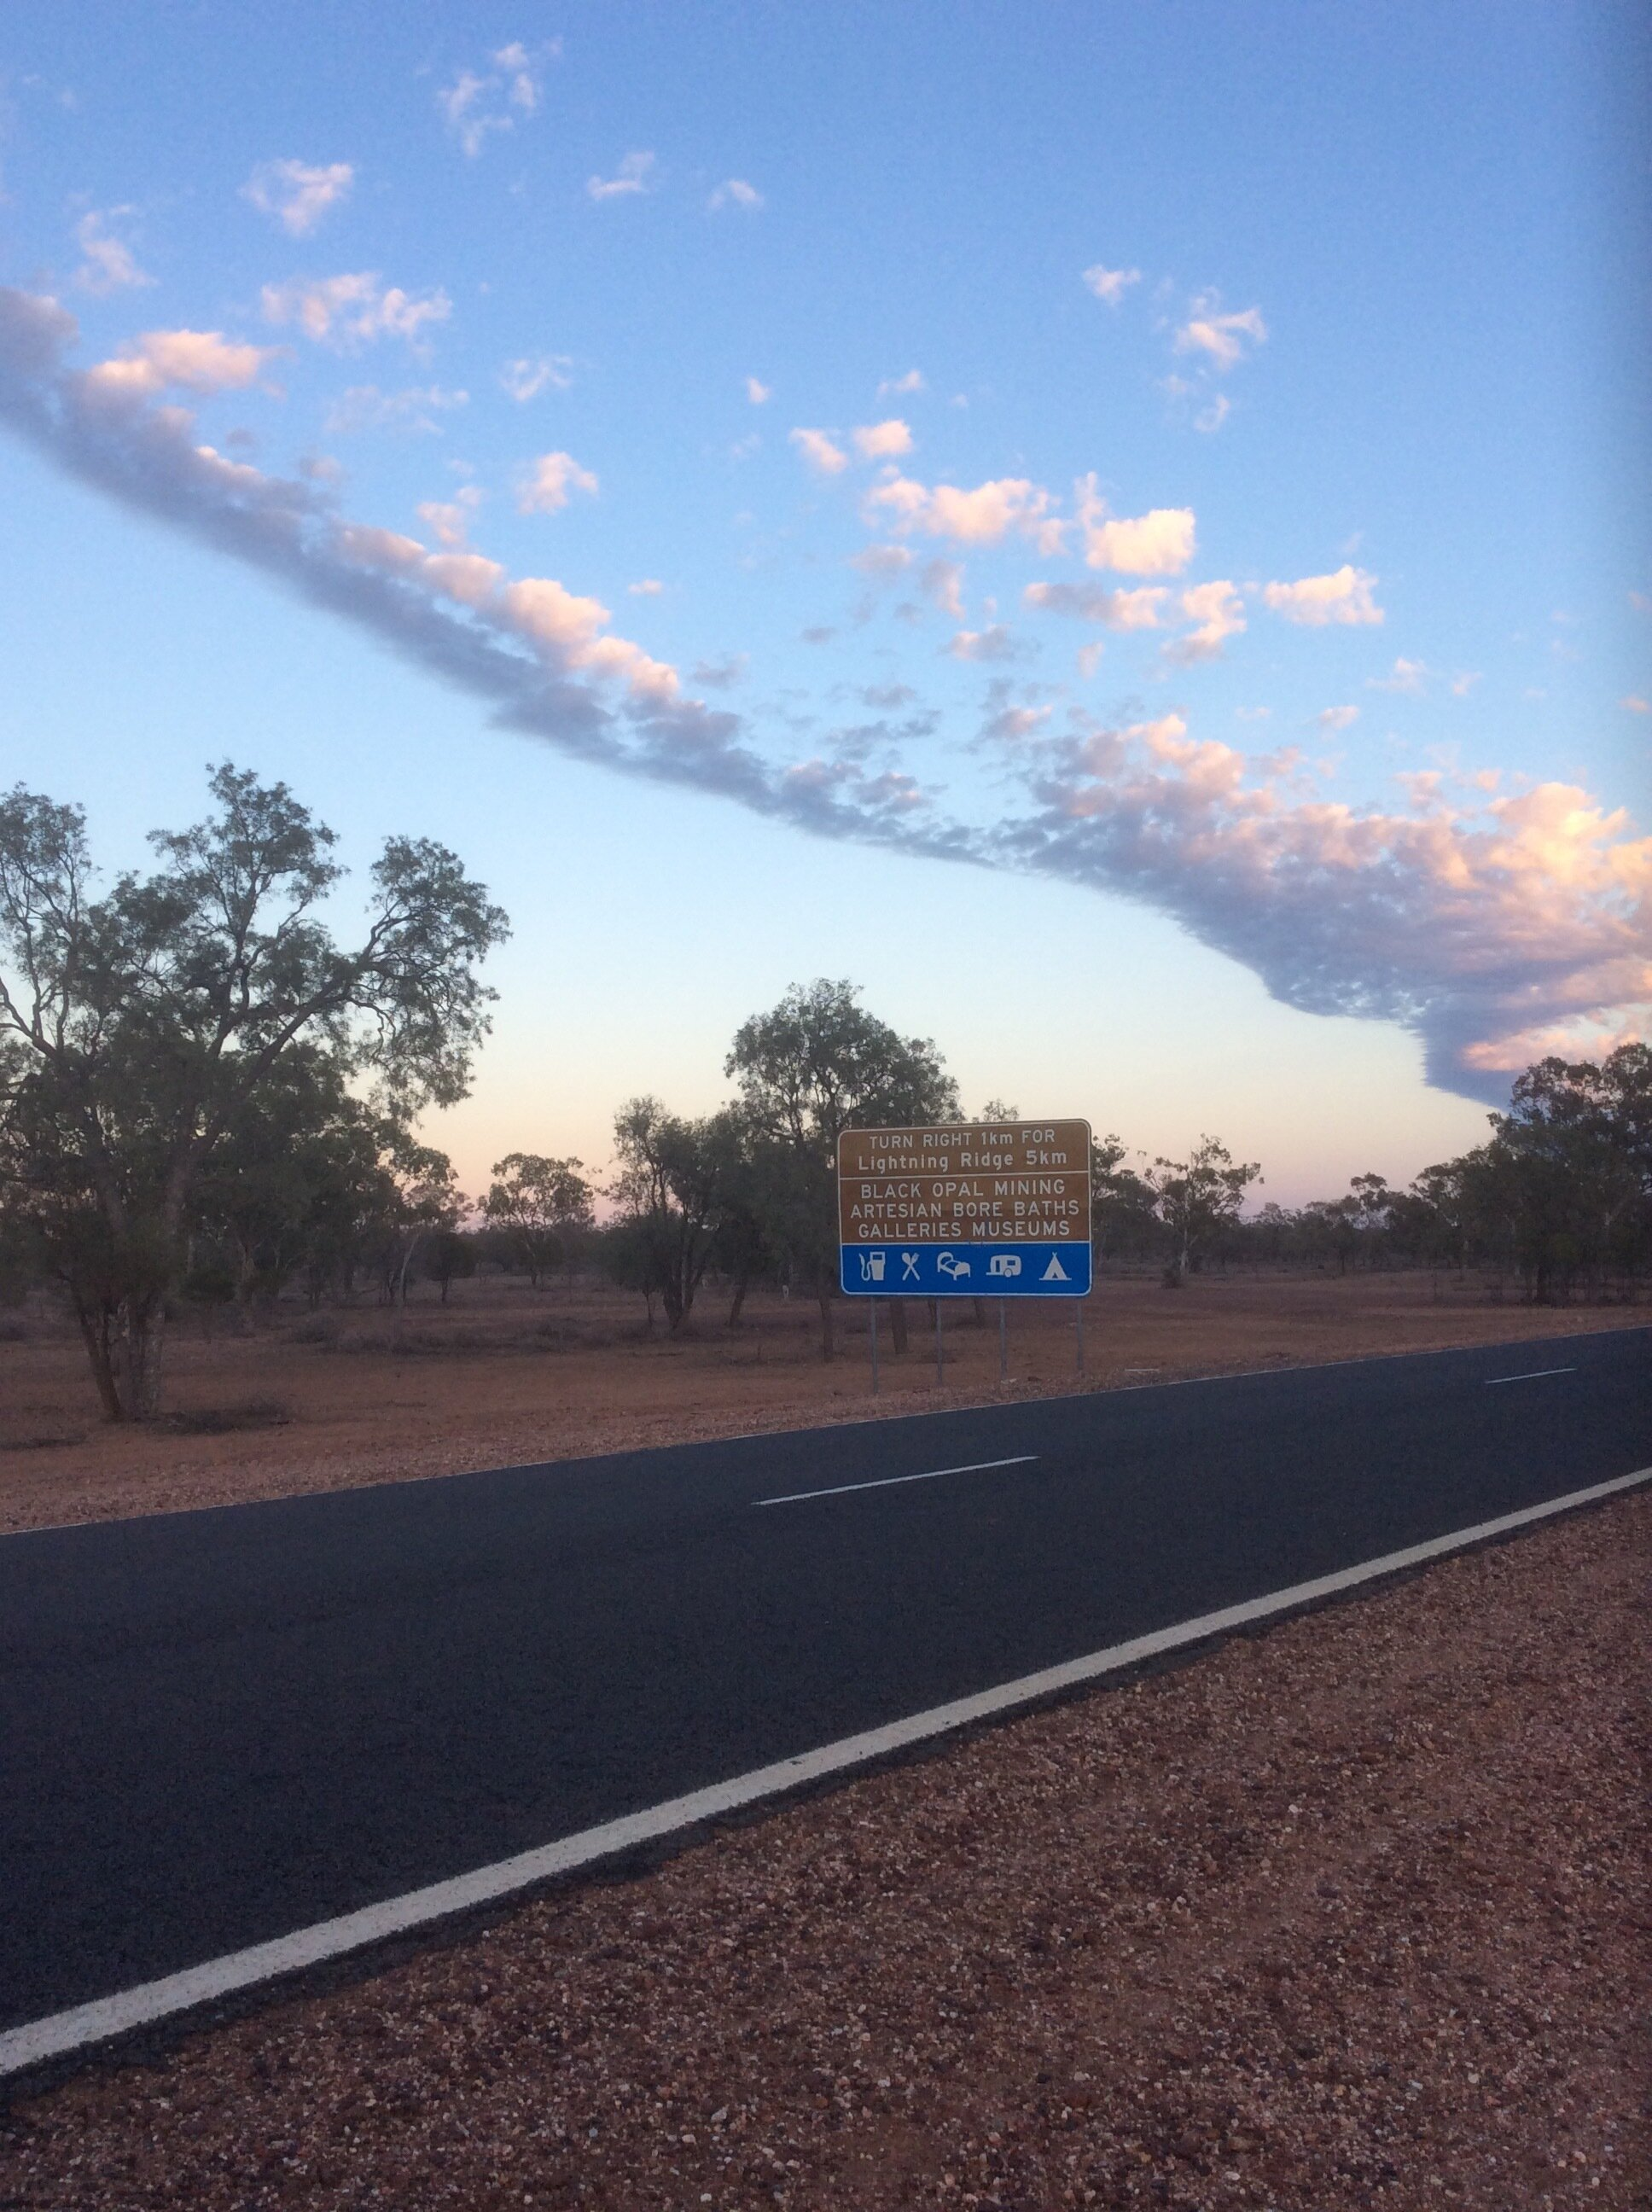 On the road to Lightning Ridge. Yes, this is on the edges of the red centre of Australia, aka the Outback.